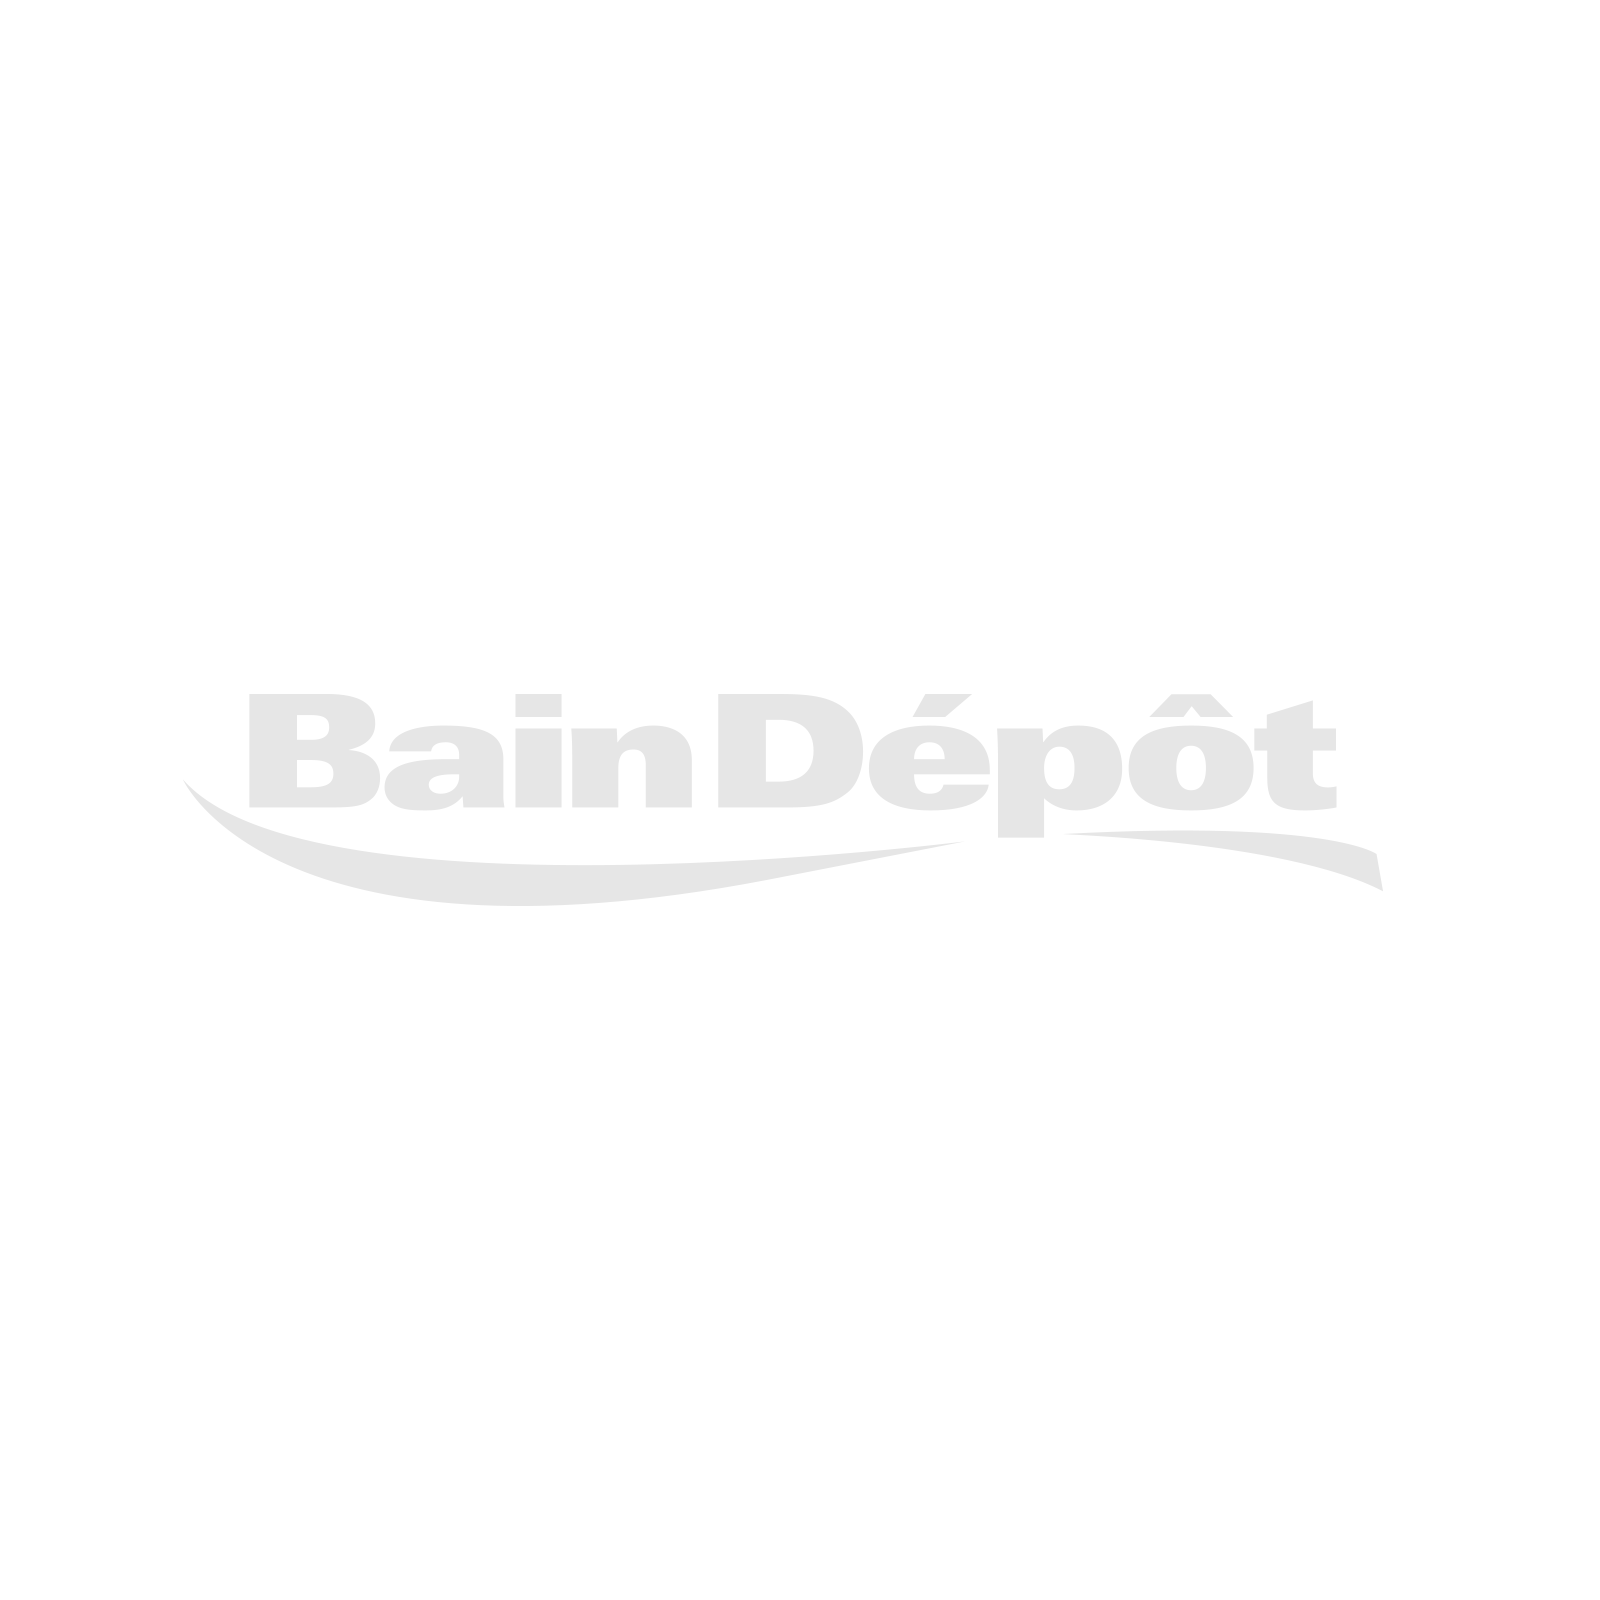 Brushed nickel 3-piece roman bathtub faucet